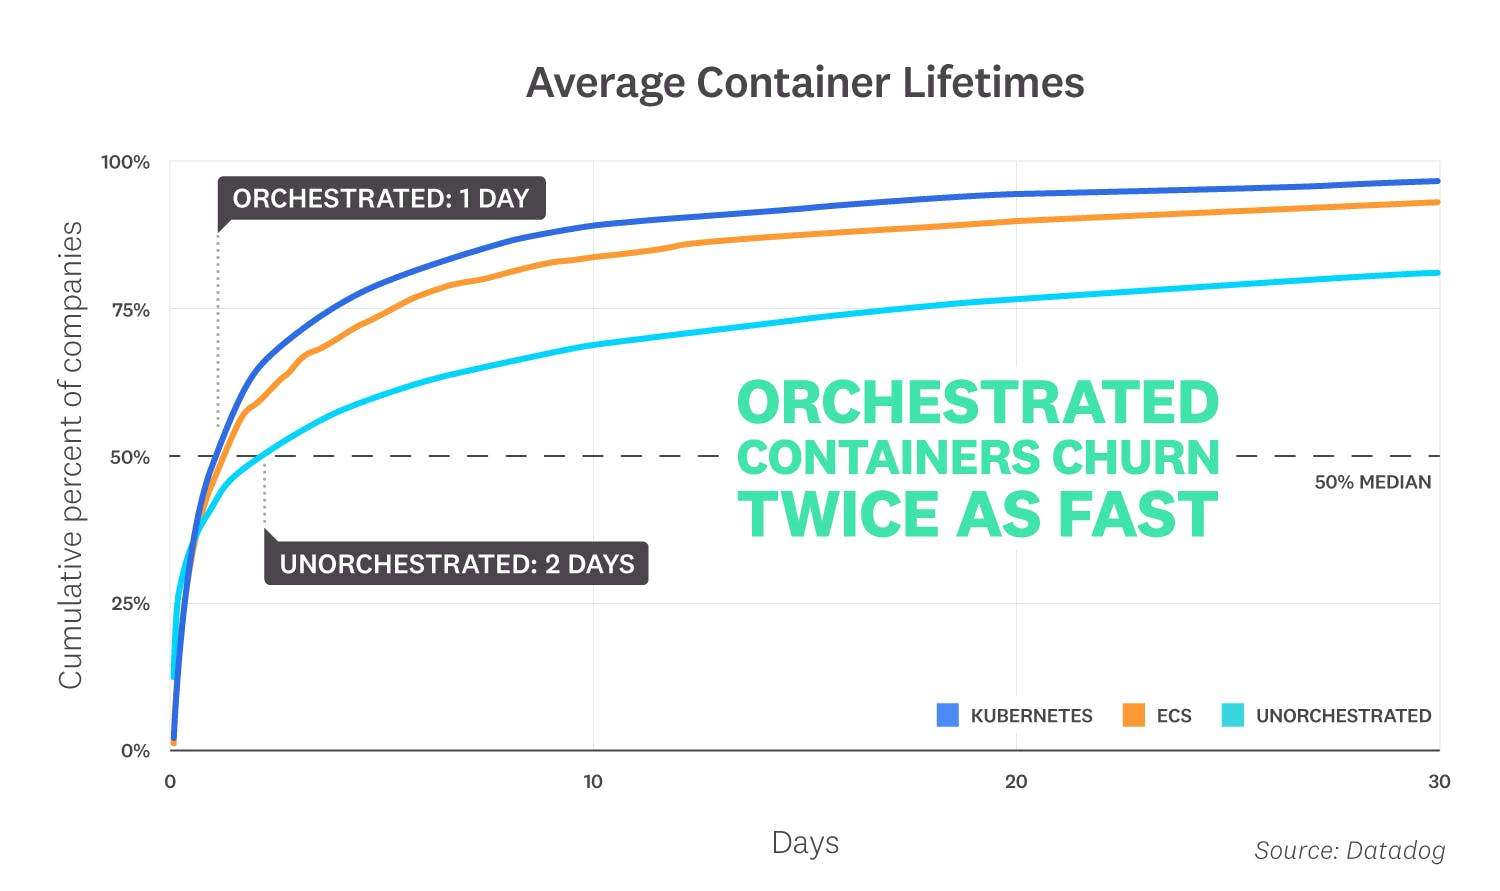 container-report-2019/container-report-2019-fact-5.png